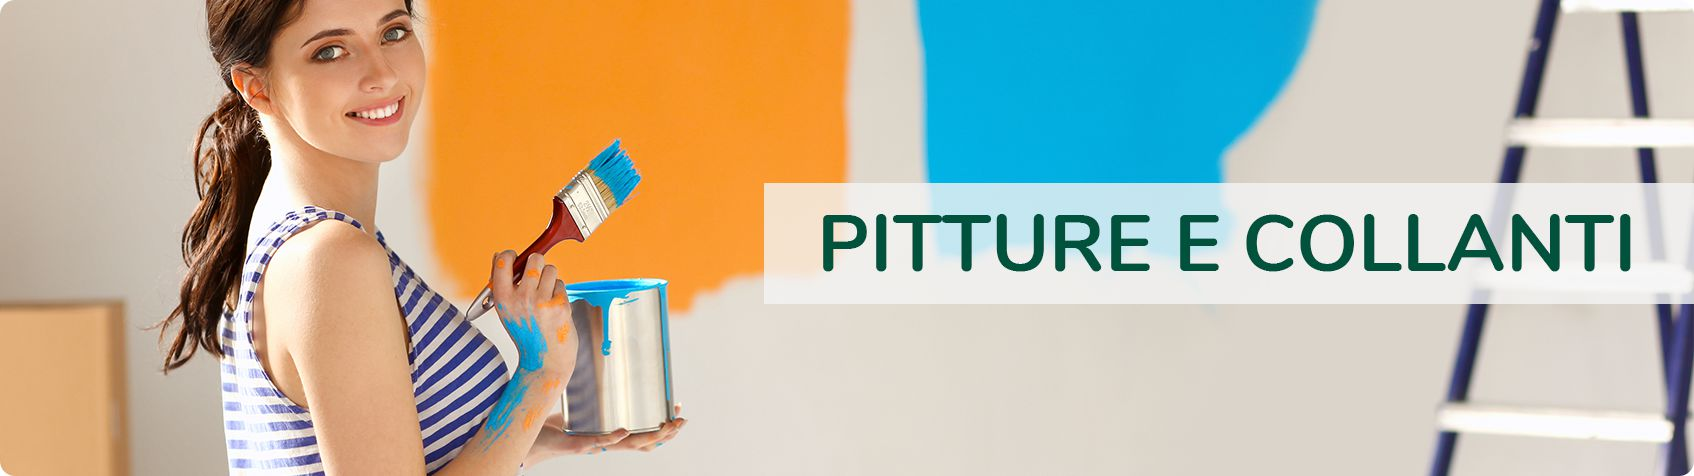 Pitture Collanti